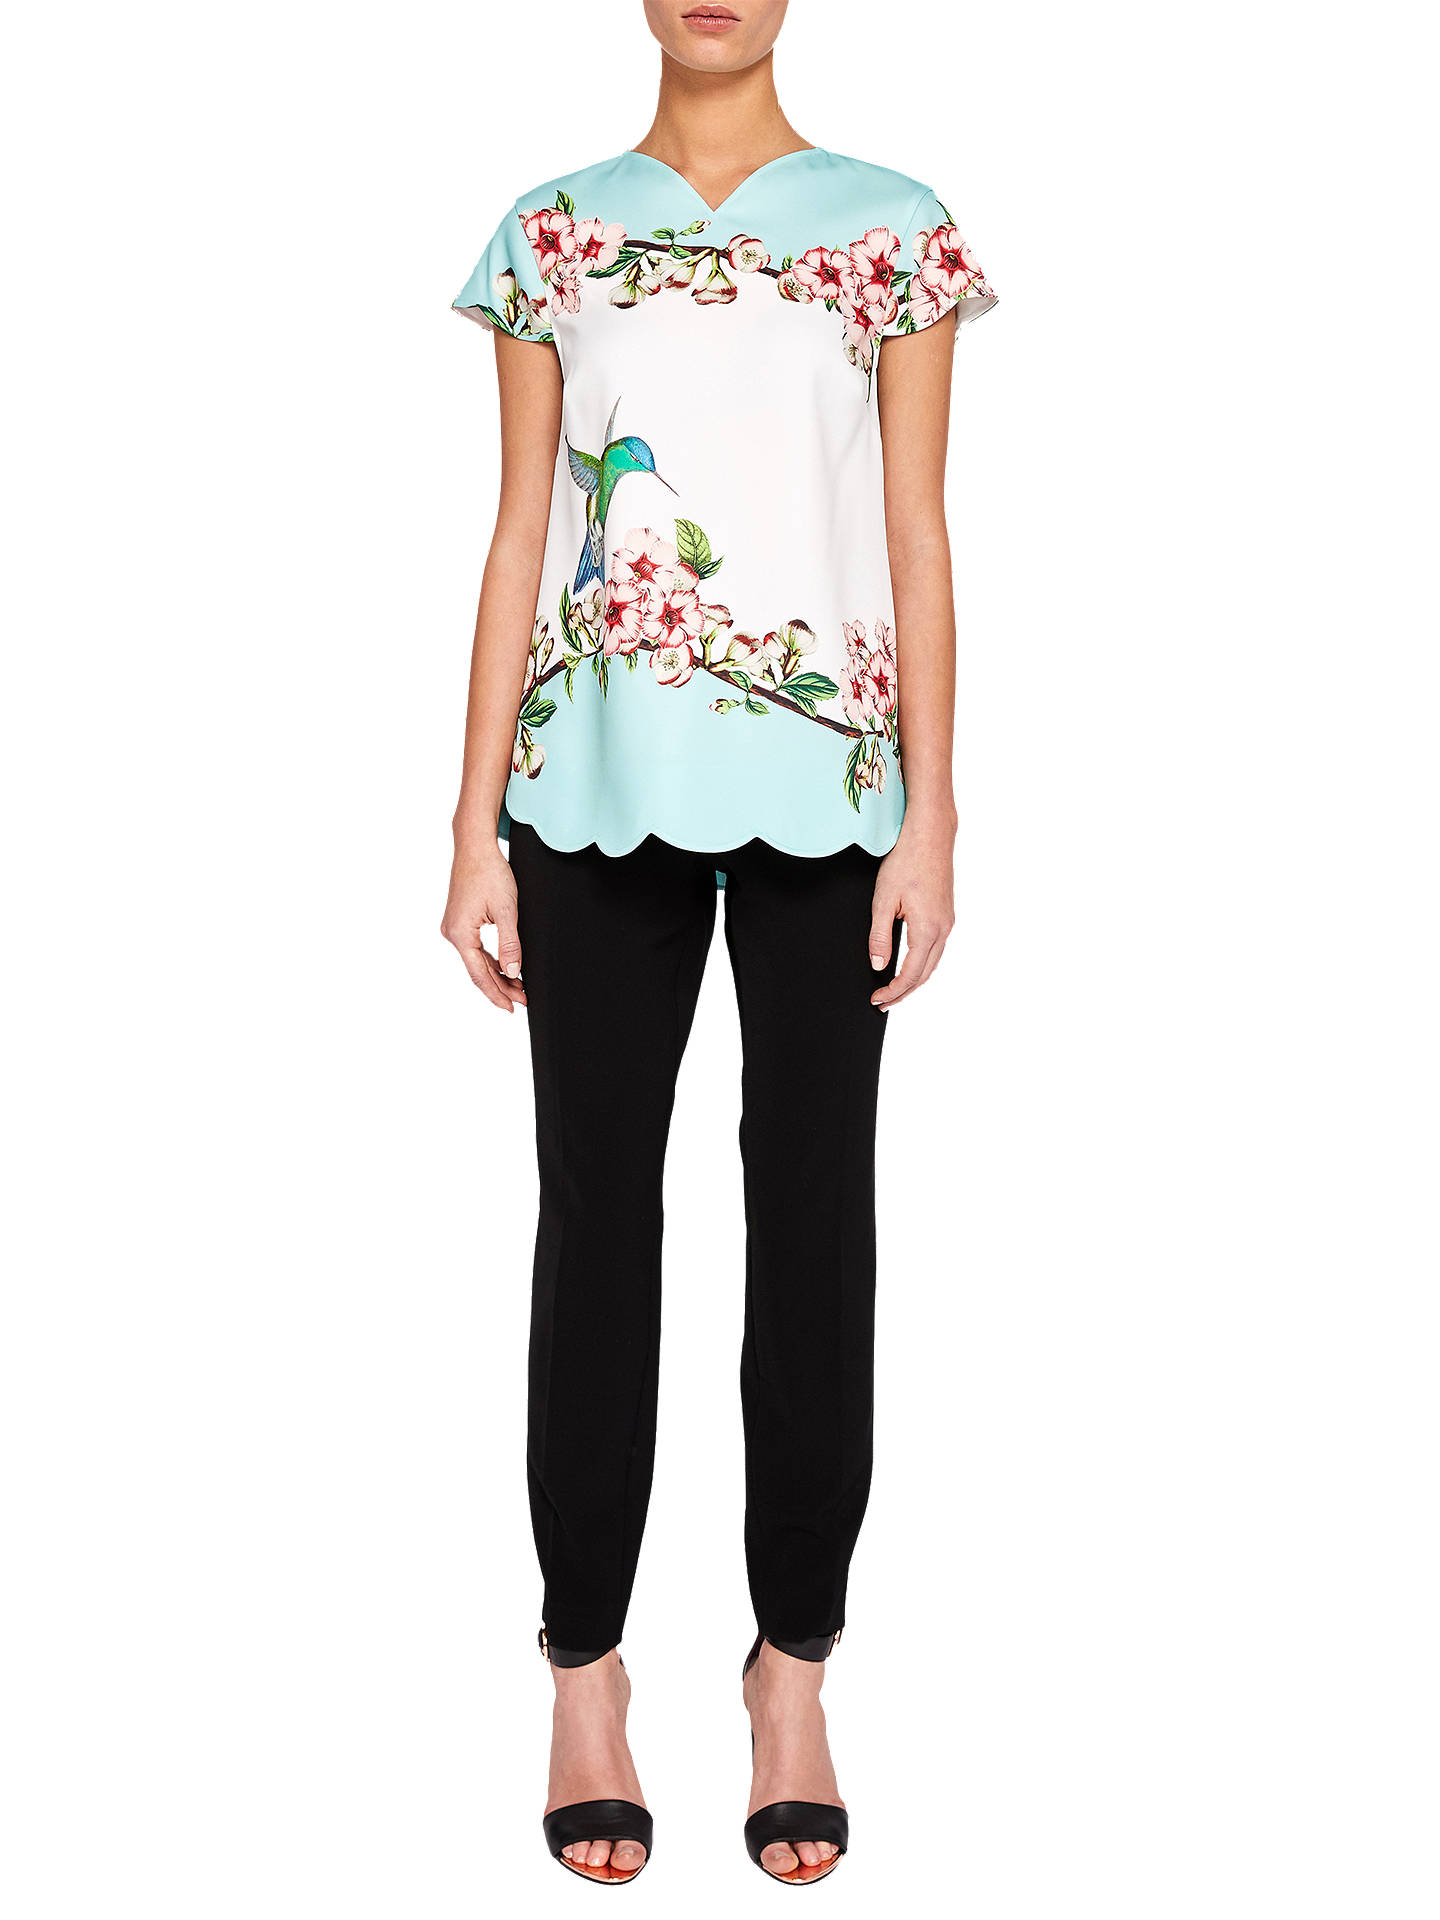 578afce2b476f5 Buy Ted Baker Elmy Nectar Print Scallop Top, Multi, 6 Online at johnlewis.